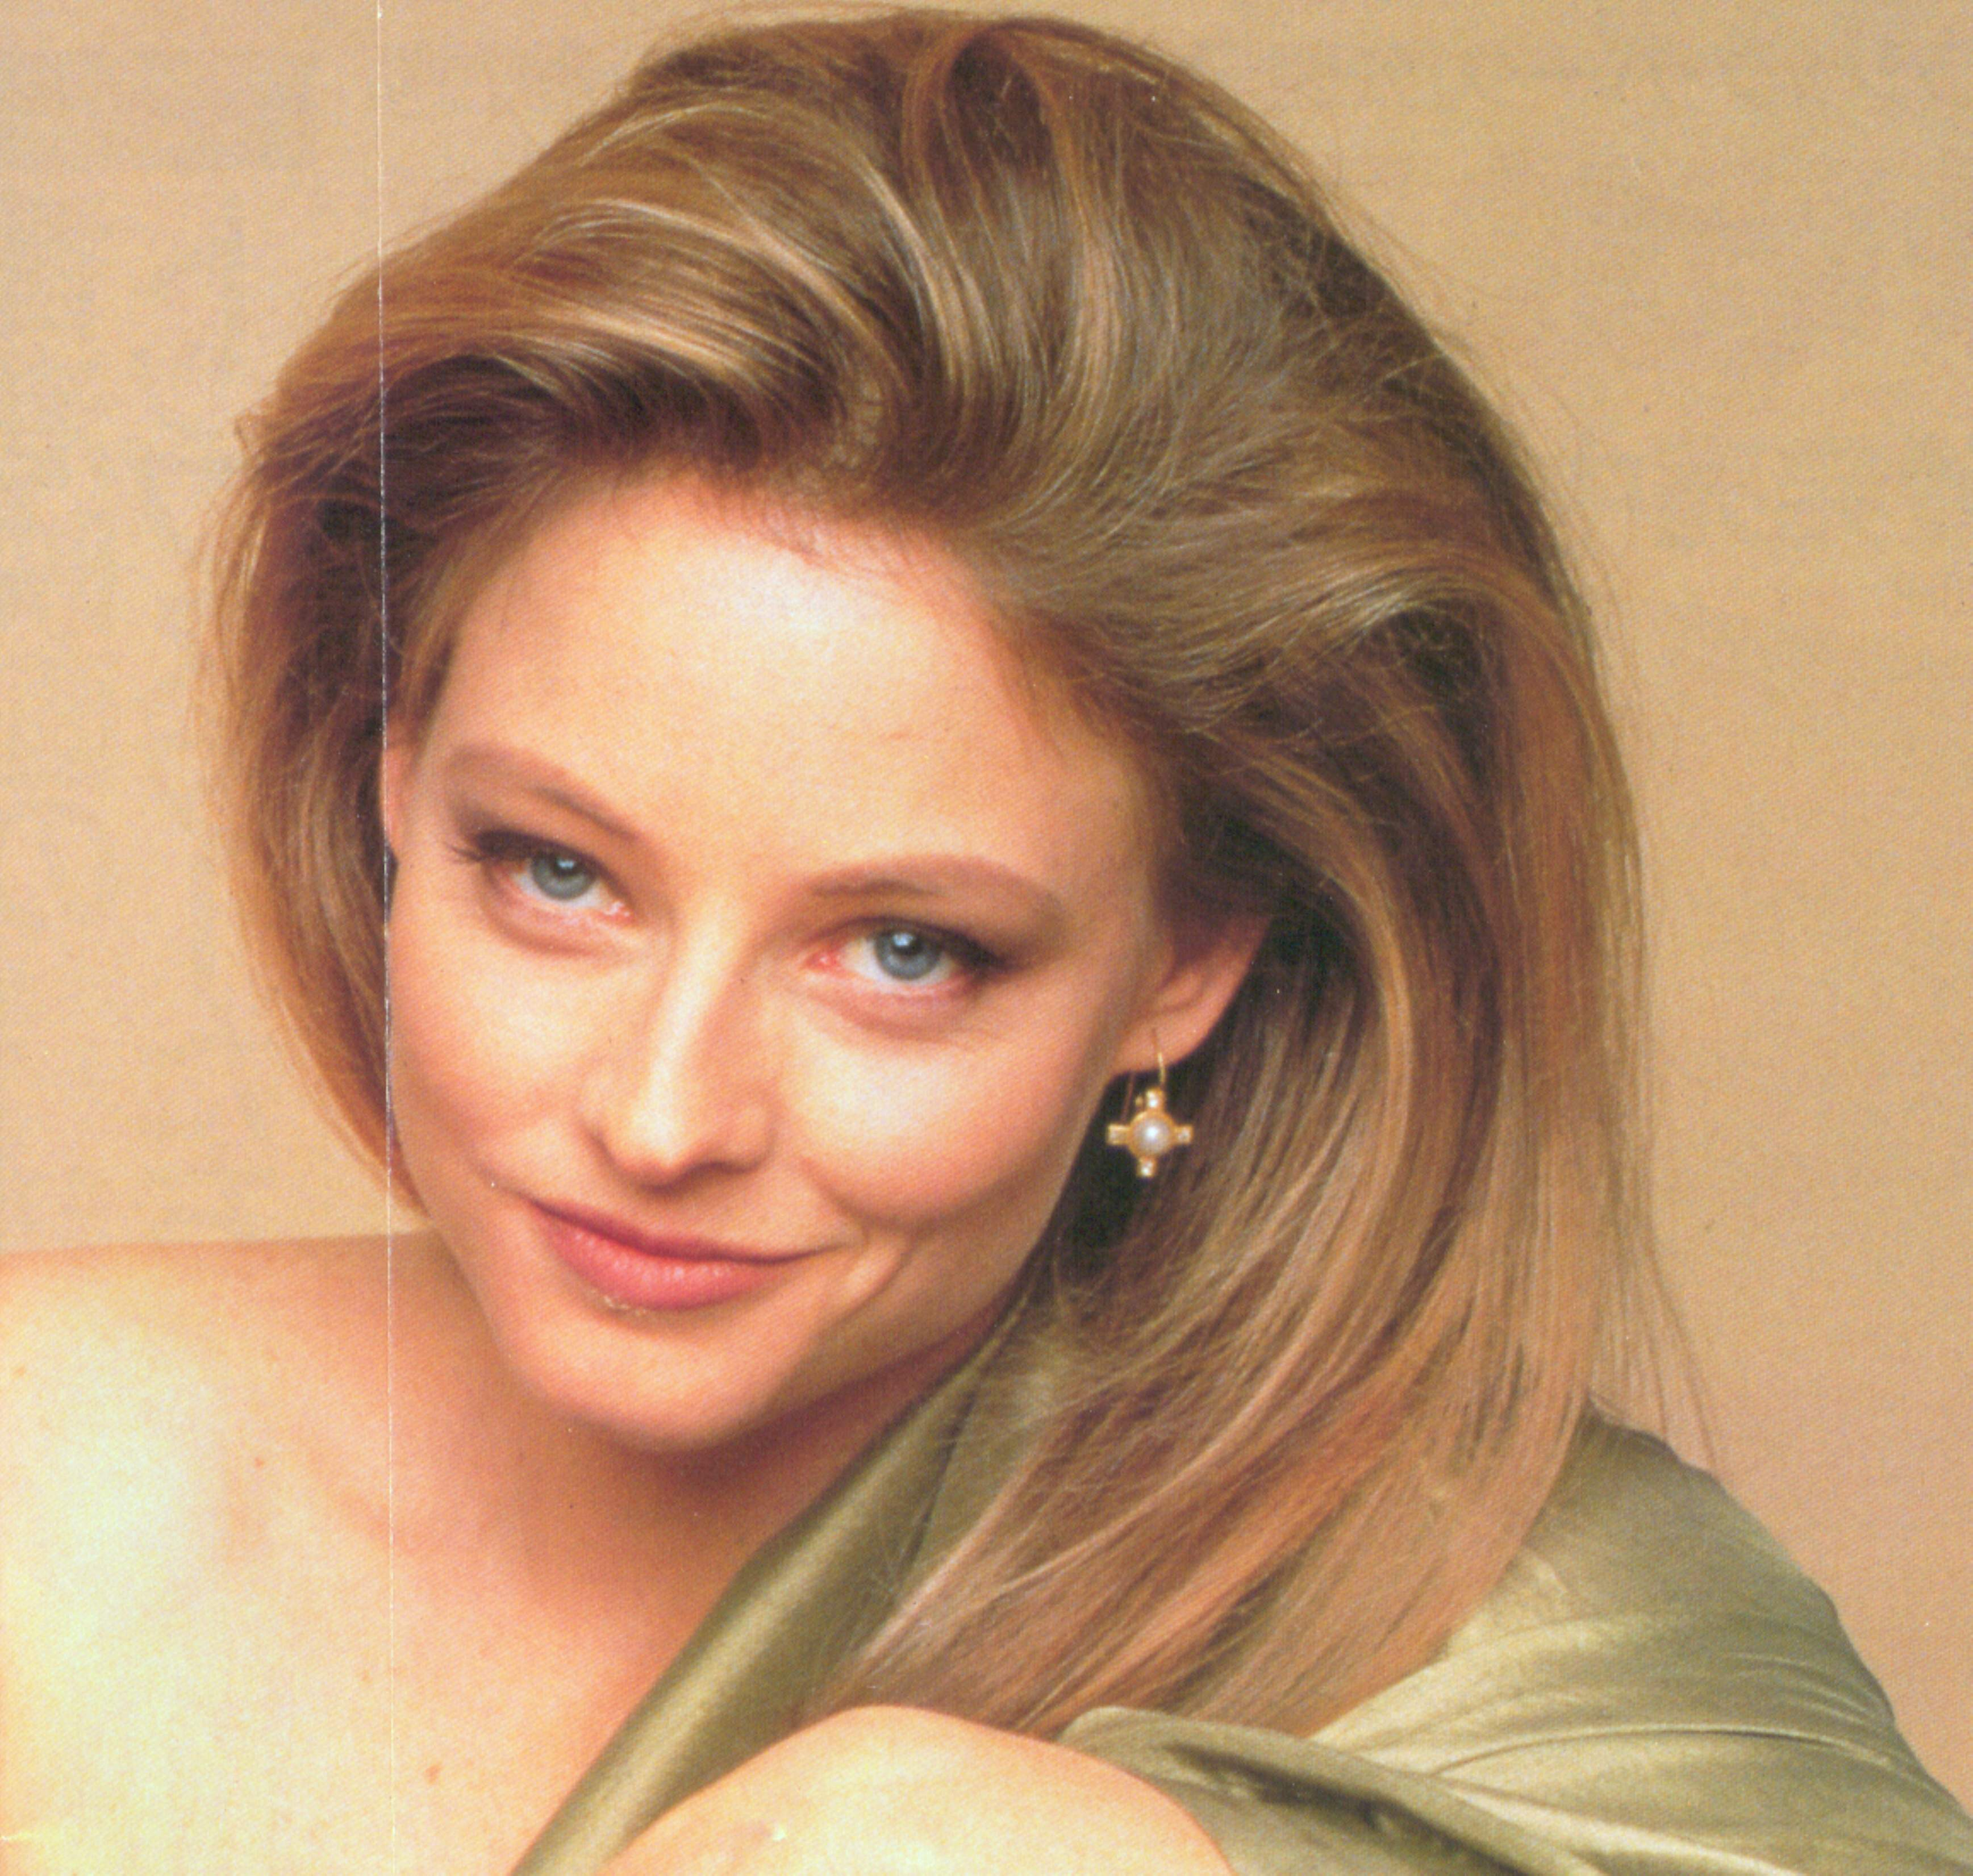 http://www.celebstar.net/pictures/jodie_foster/more-free-pictures/jodie-foster_674.jpg